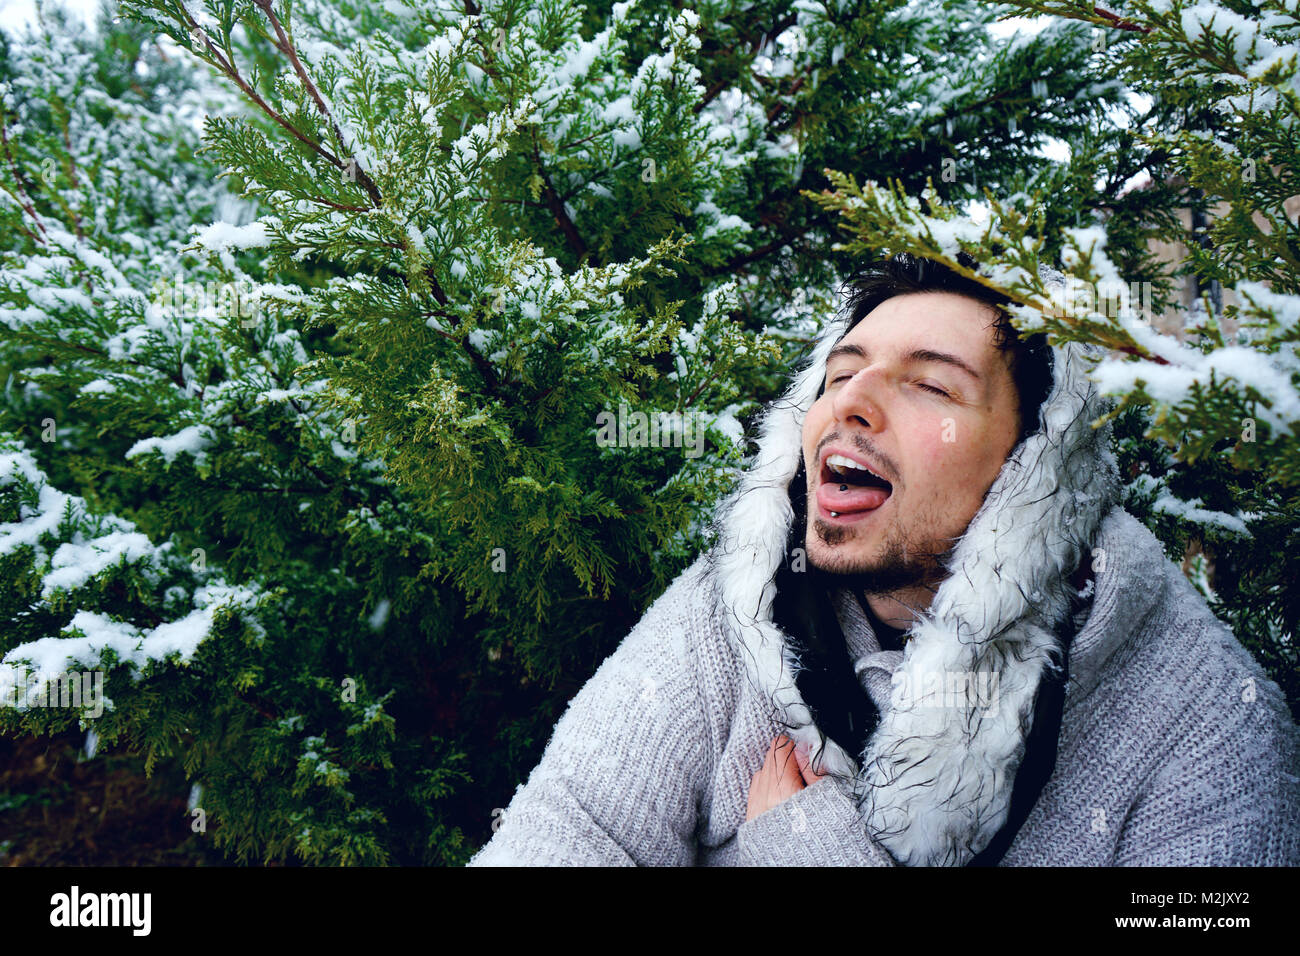 Young man enjoying a winter and snowy day - Stock Image